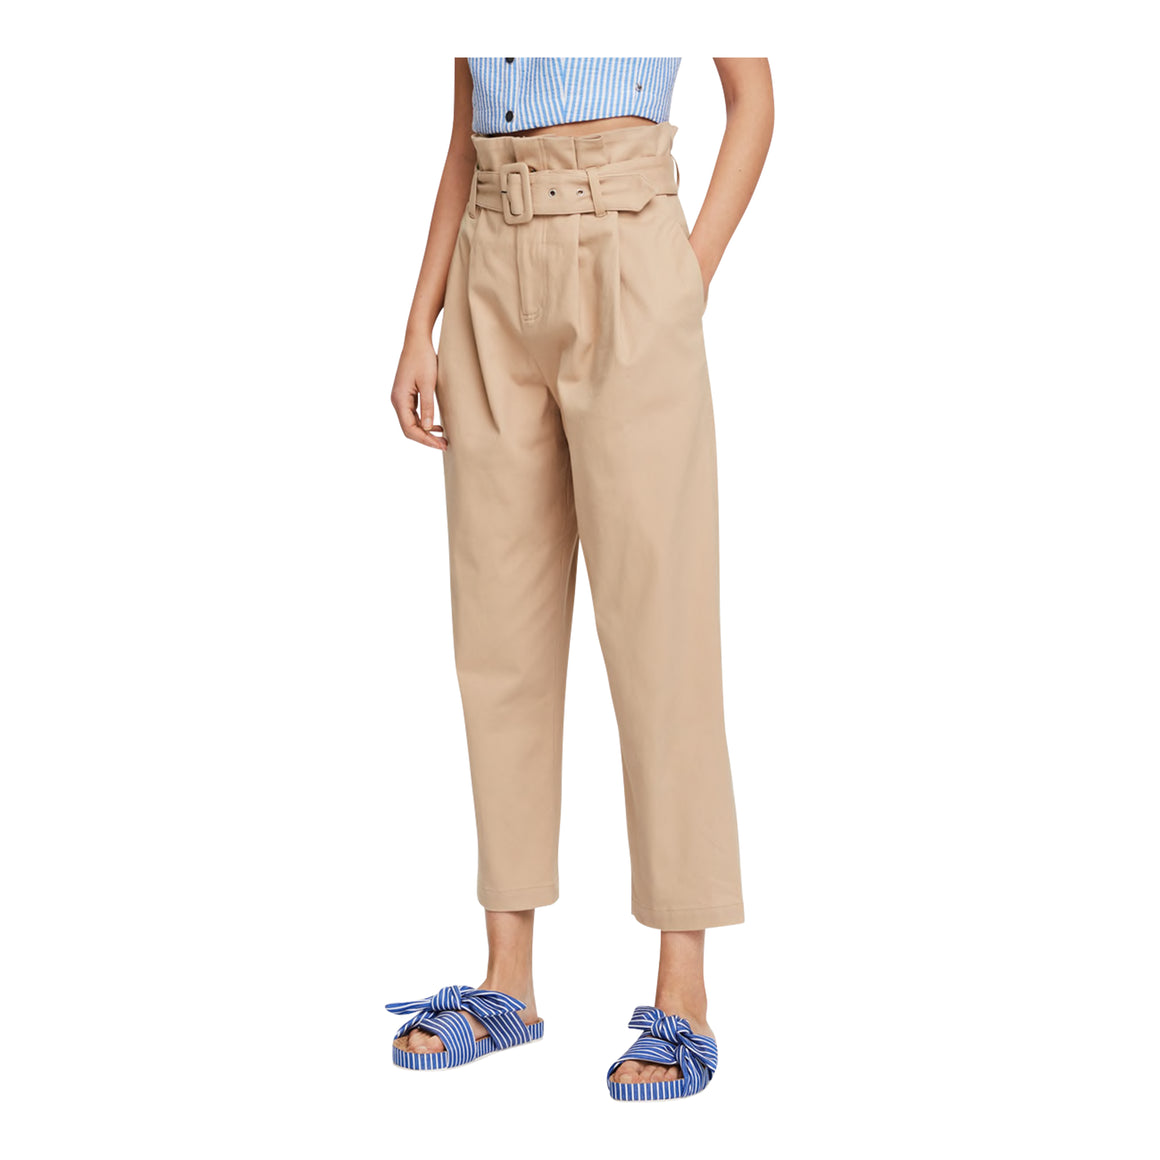 Paperbag Trousers for Women in Sand